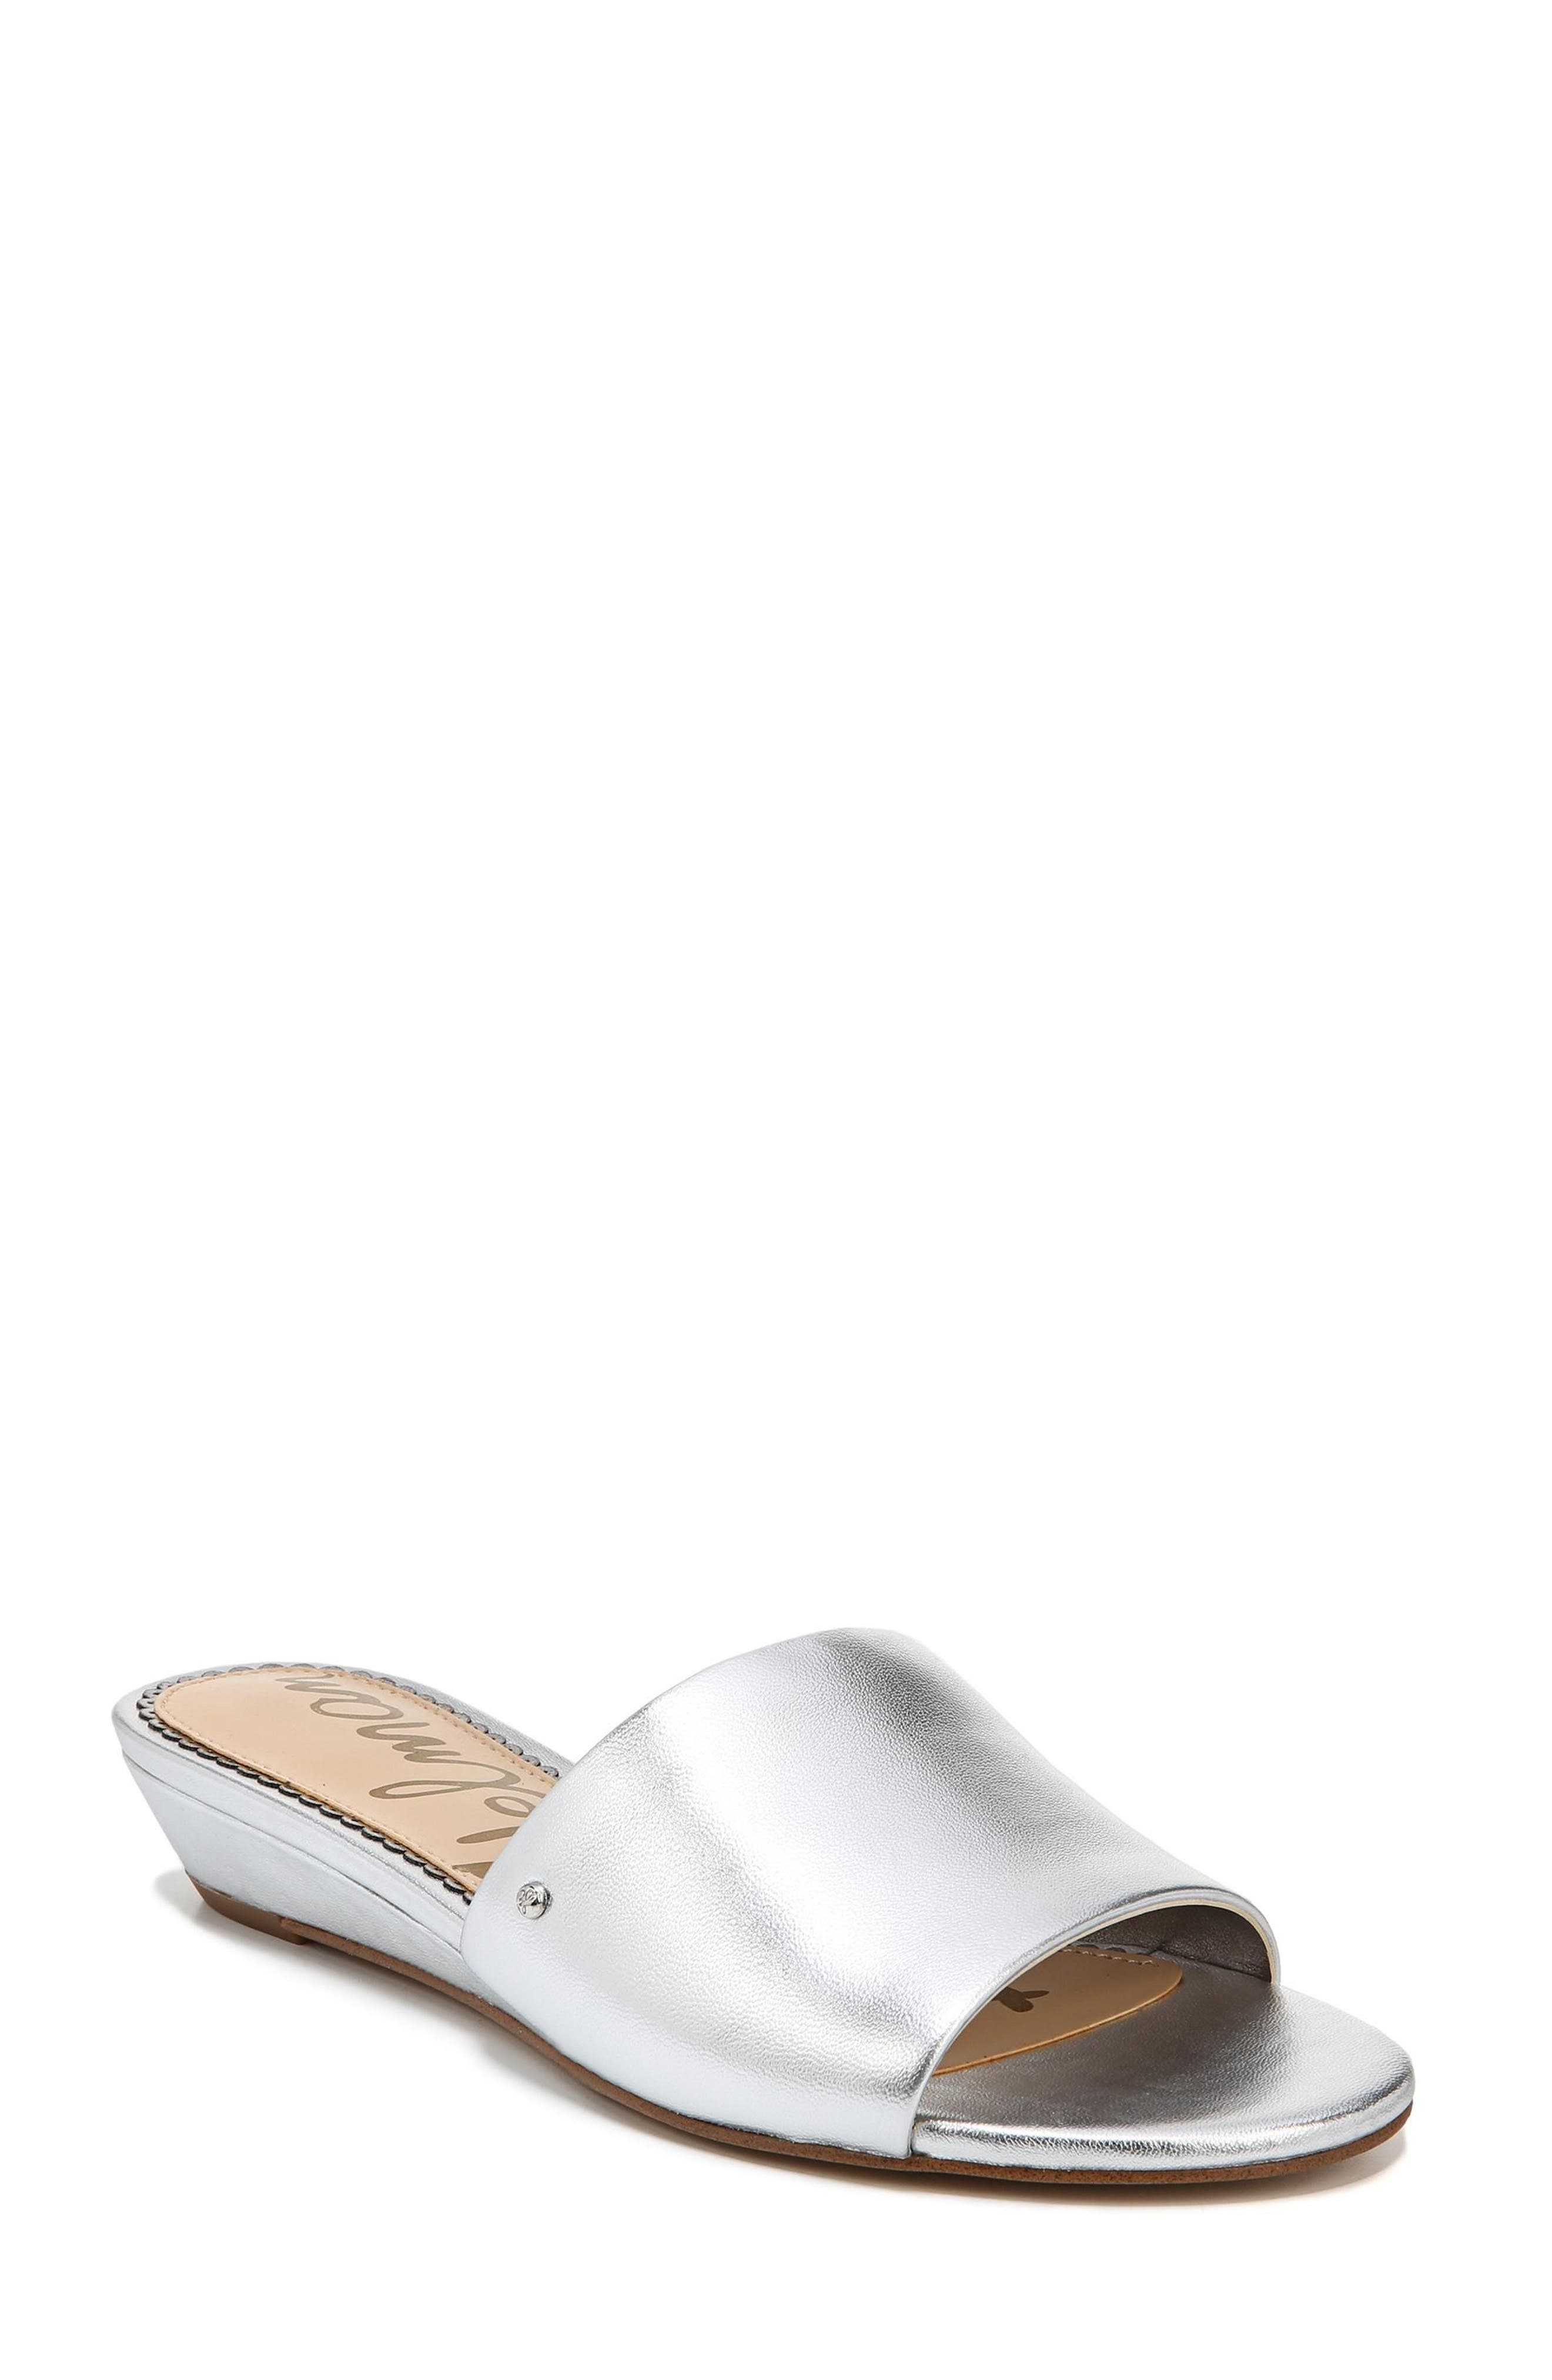 Sam Edelman Liliana Slide Sandal (Women)